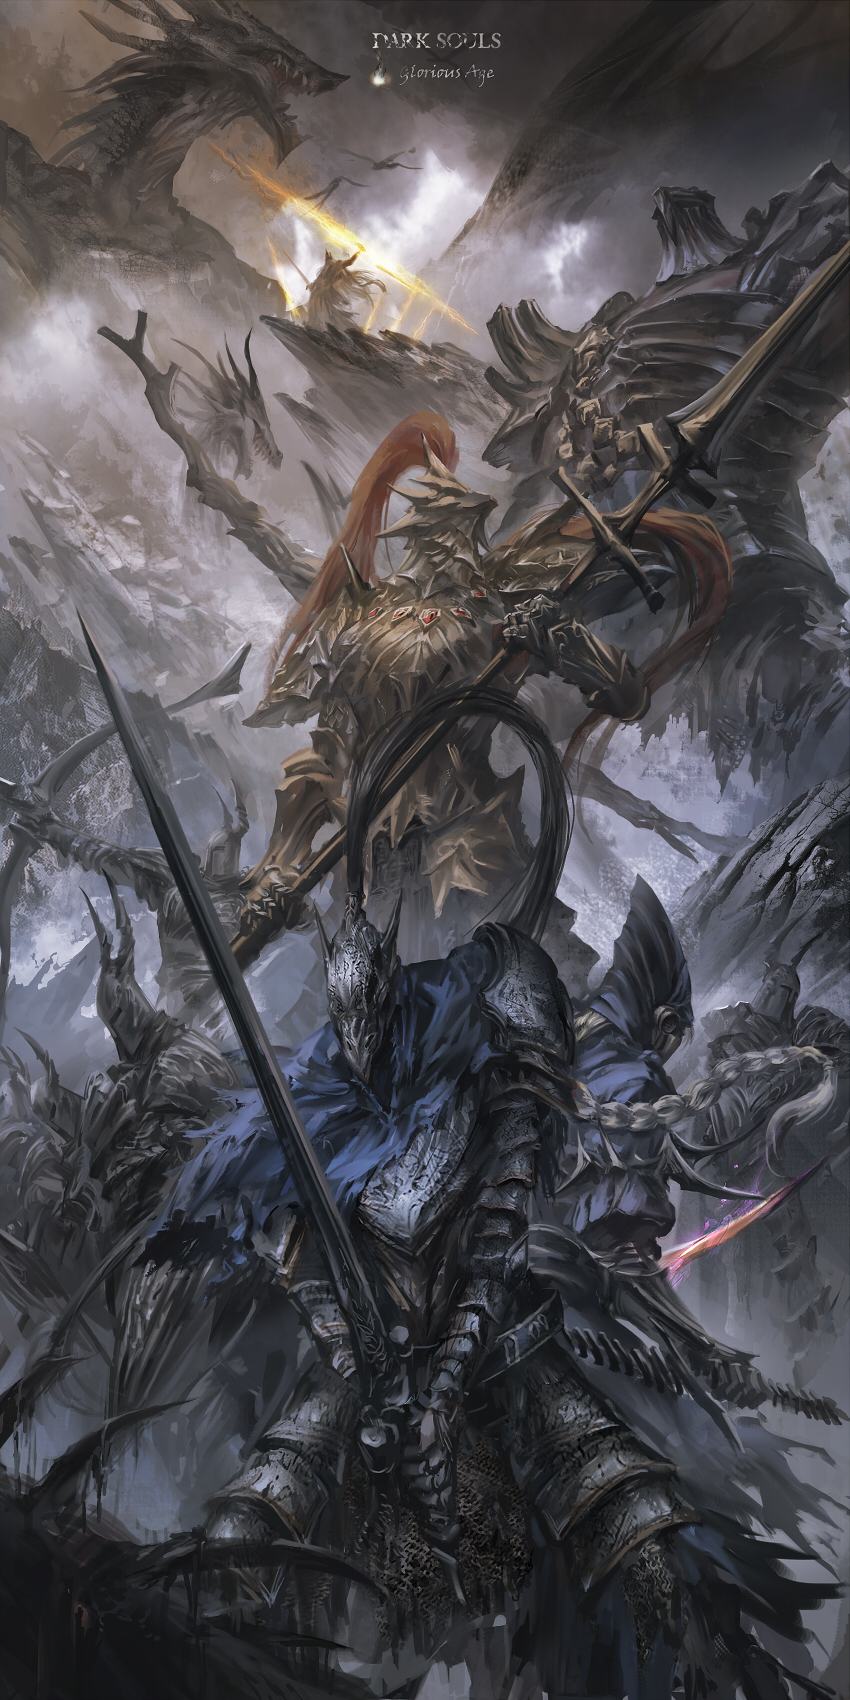 1girl 4boys 5others aiming armor artorias_the_abysswalker back-to-back battle blonde_hair blue_capelet bow_(weapon) braid breastplate capelet copyright_name crown dark_souls dragon dragon_slayer_ornstein dual_wielding electricity english_commentary english_text epic facing_away facing_viewer faulds fighting_stance flying full_armor gauntlets glowing glowing_weapon gold_armor gwyn_lord_of_cinder hawkeye_gough helmet highres holding holding_bow_(weapon) holding_spear holding_weapon hood horned_helmet knight looking_up lord's_blade_ciaran magic multiple_boys multiple_others open_mouth pauldrons plume polearm reverse_grip short_sword shoulder_armor silver_knight_(dark_souls) single_braid souls_(from_software) spear standing stu_dts sword teeth weapon